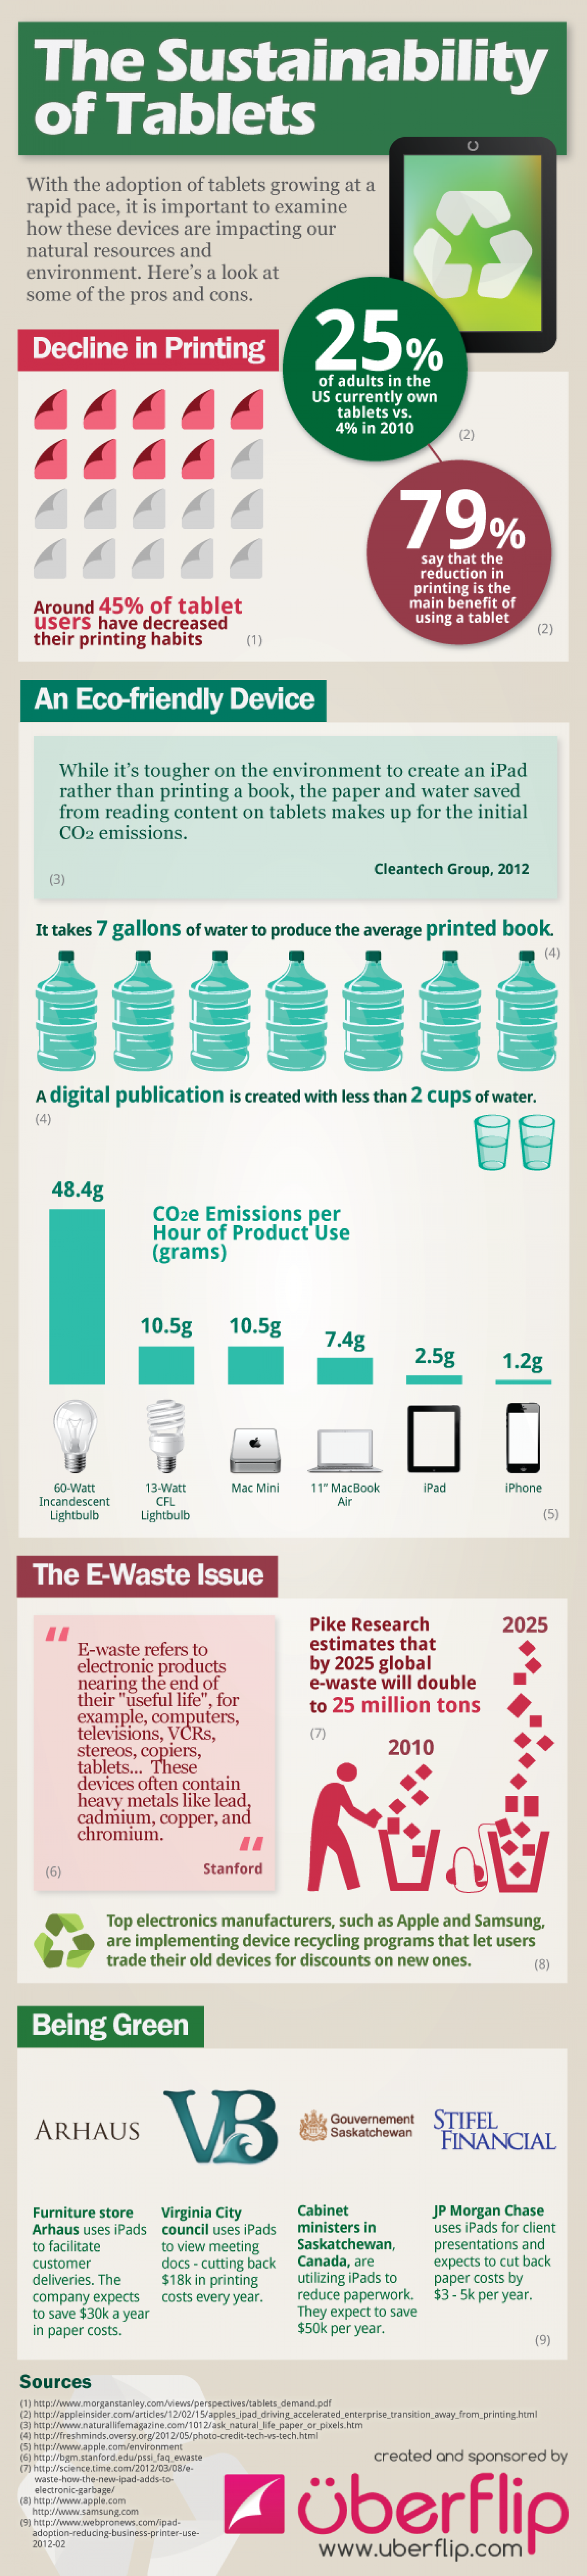 The Sustainability of Tablets Infographic